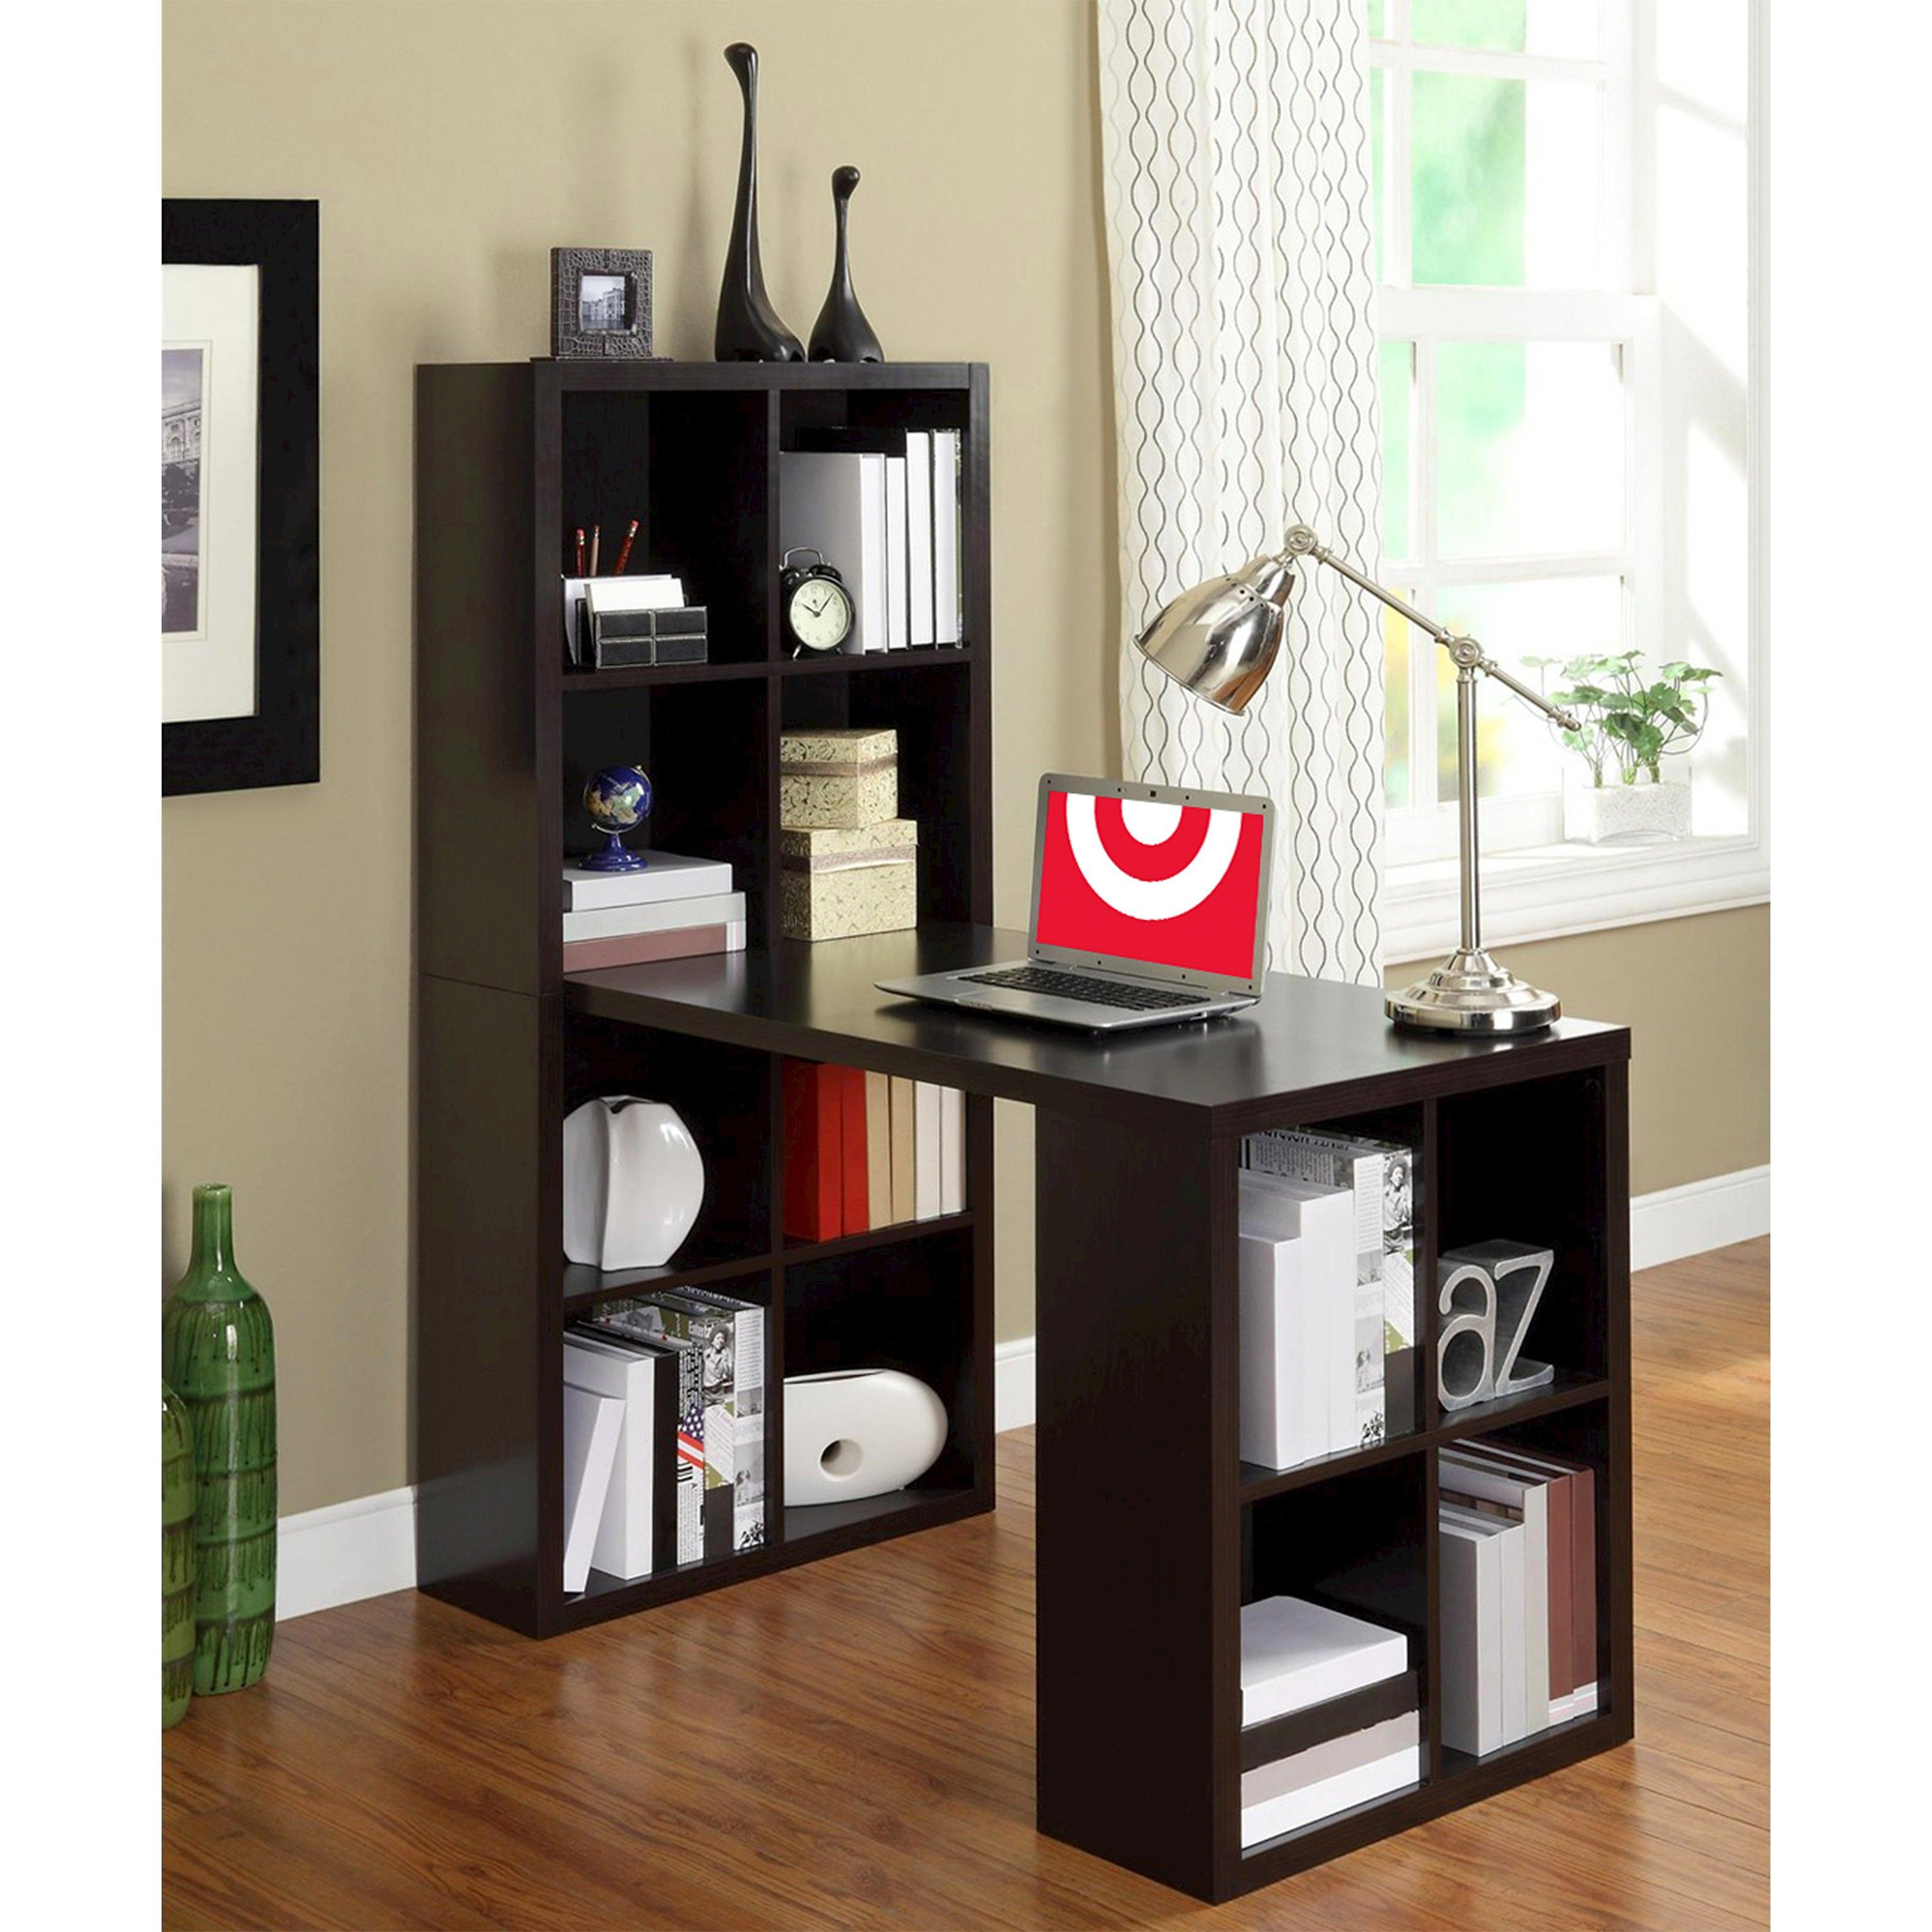 The ameriwood computer desk with shelves brown storage cubbies